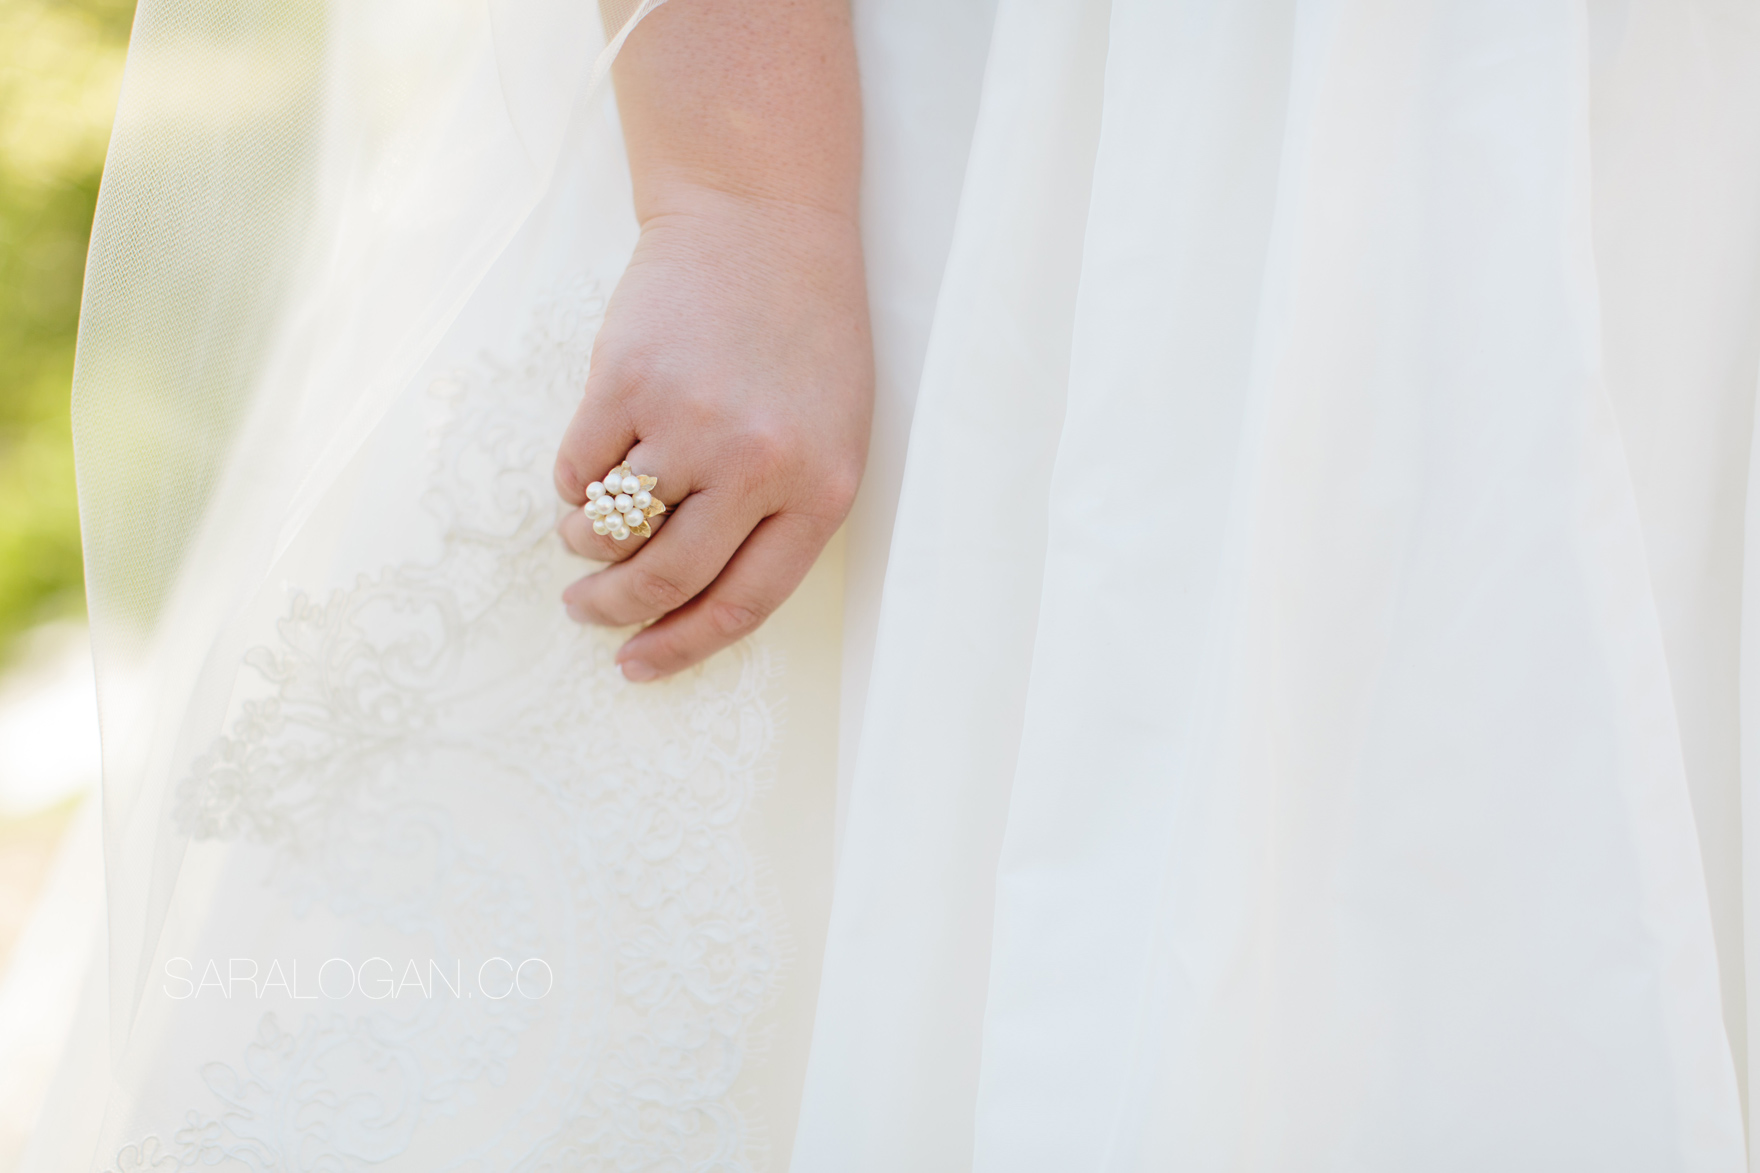 Vintage right-hand ring on wedding veil